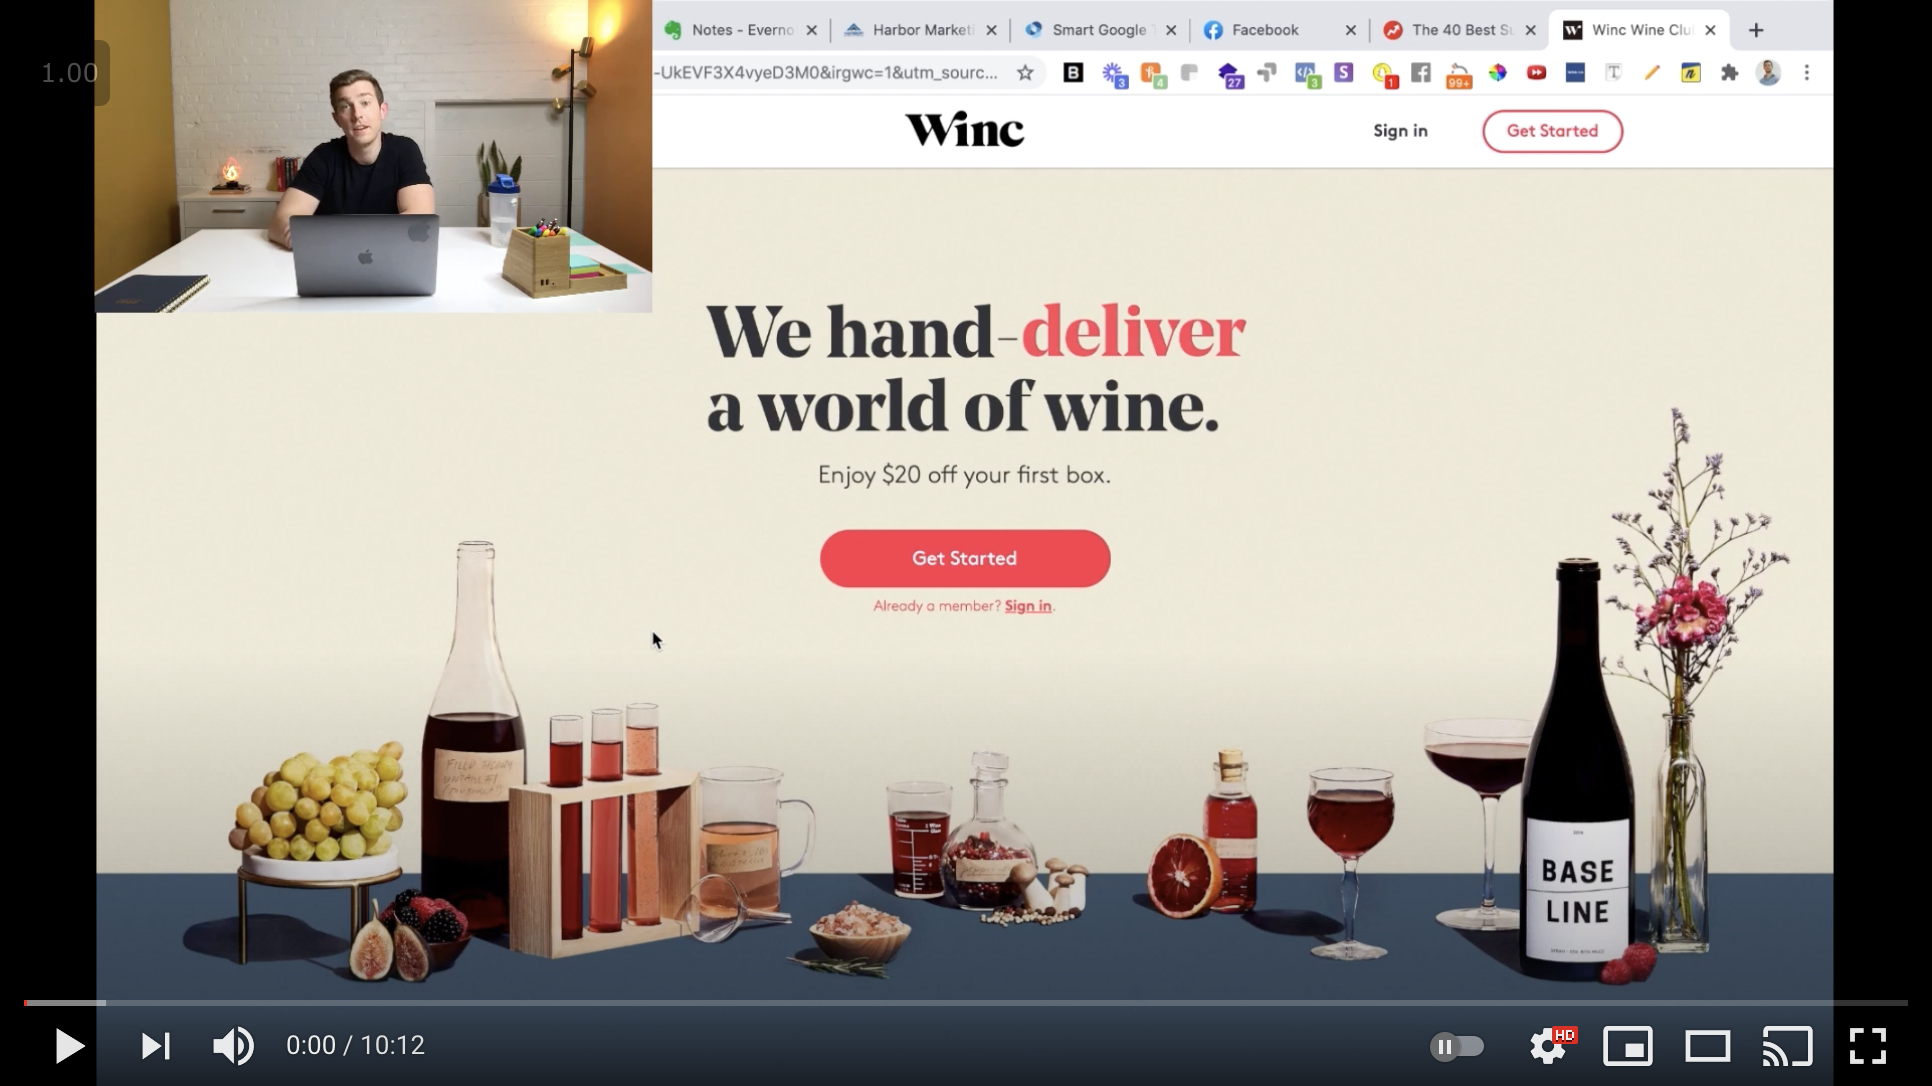 Are you struggling to convert website visitors into new subscribers? It can be easy to get frustrated with a conversion rate that's not where you want it. But there are many ways to optimize your website so that you can craft a better user experience and ultimately generate more sales for your subscription box. In this video, Steve dives into an in-depth audit of Winc.com, a popular wine subscription box.